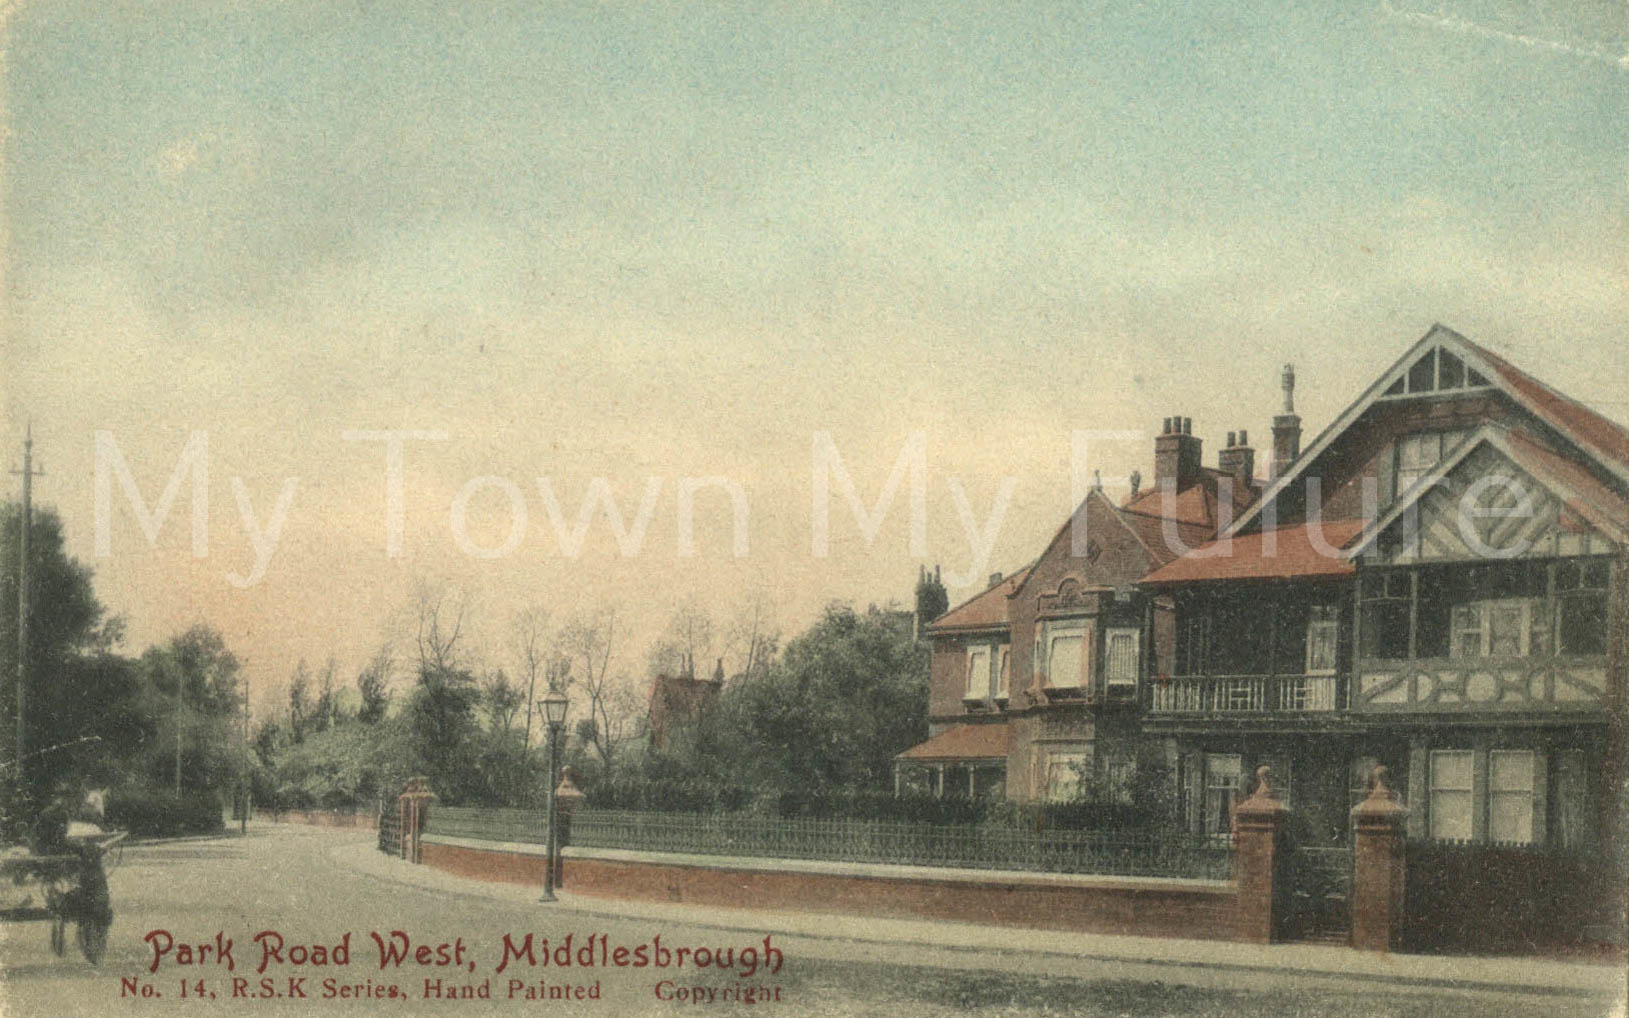 Postcard style print of Park Road West, Middlesbrough